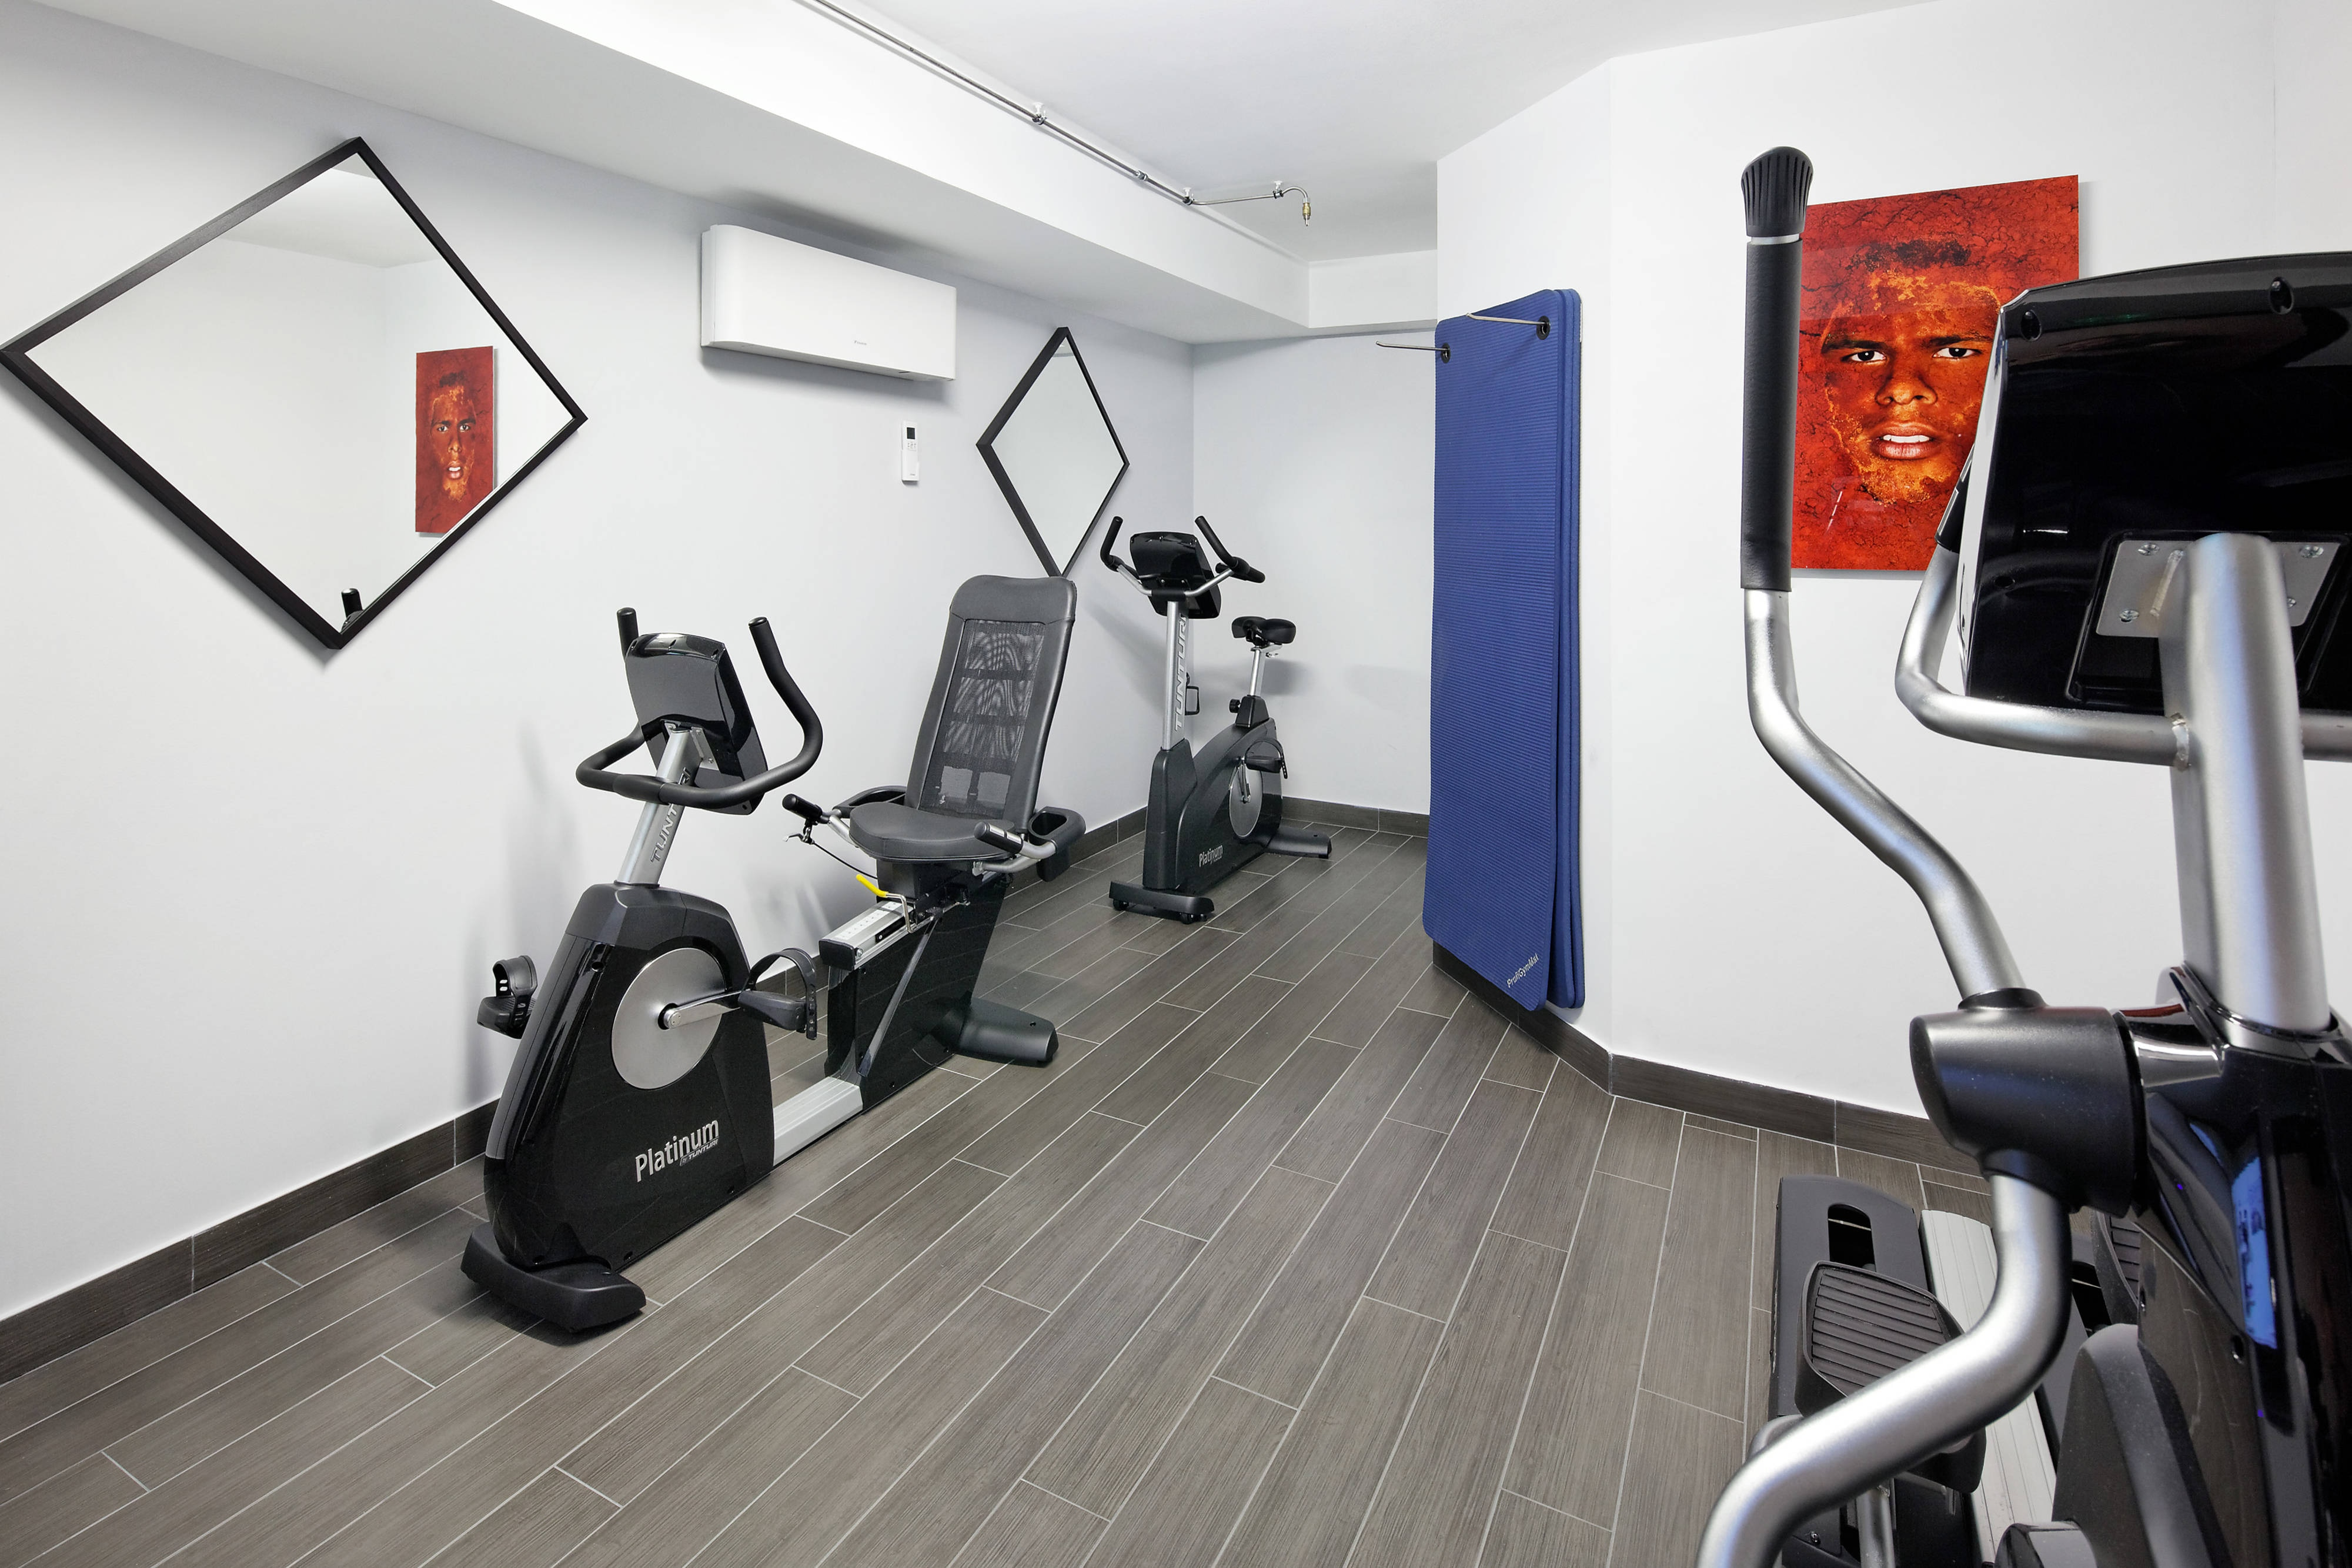 Hotel in Boulogne mit Fitnessstudio